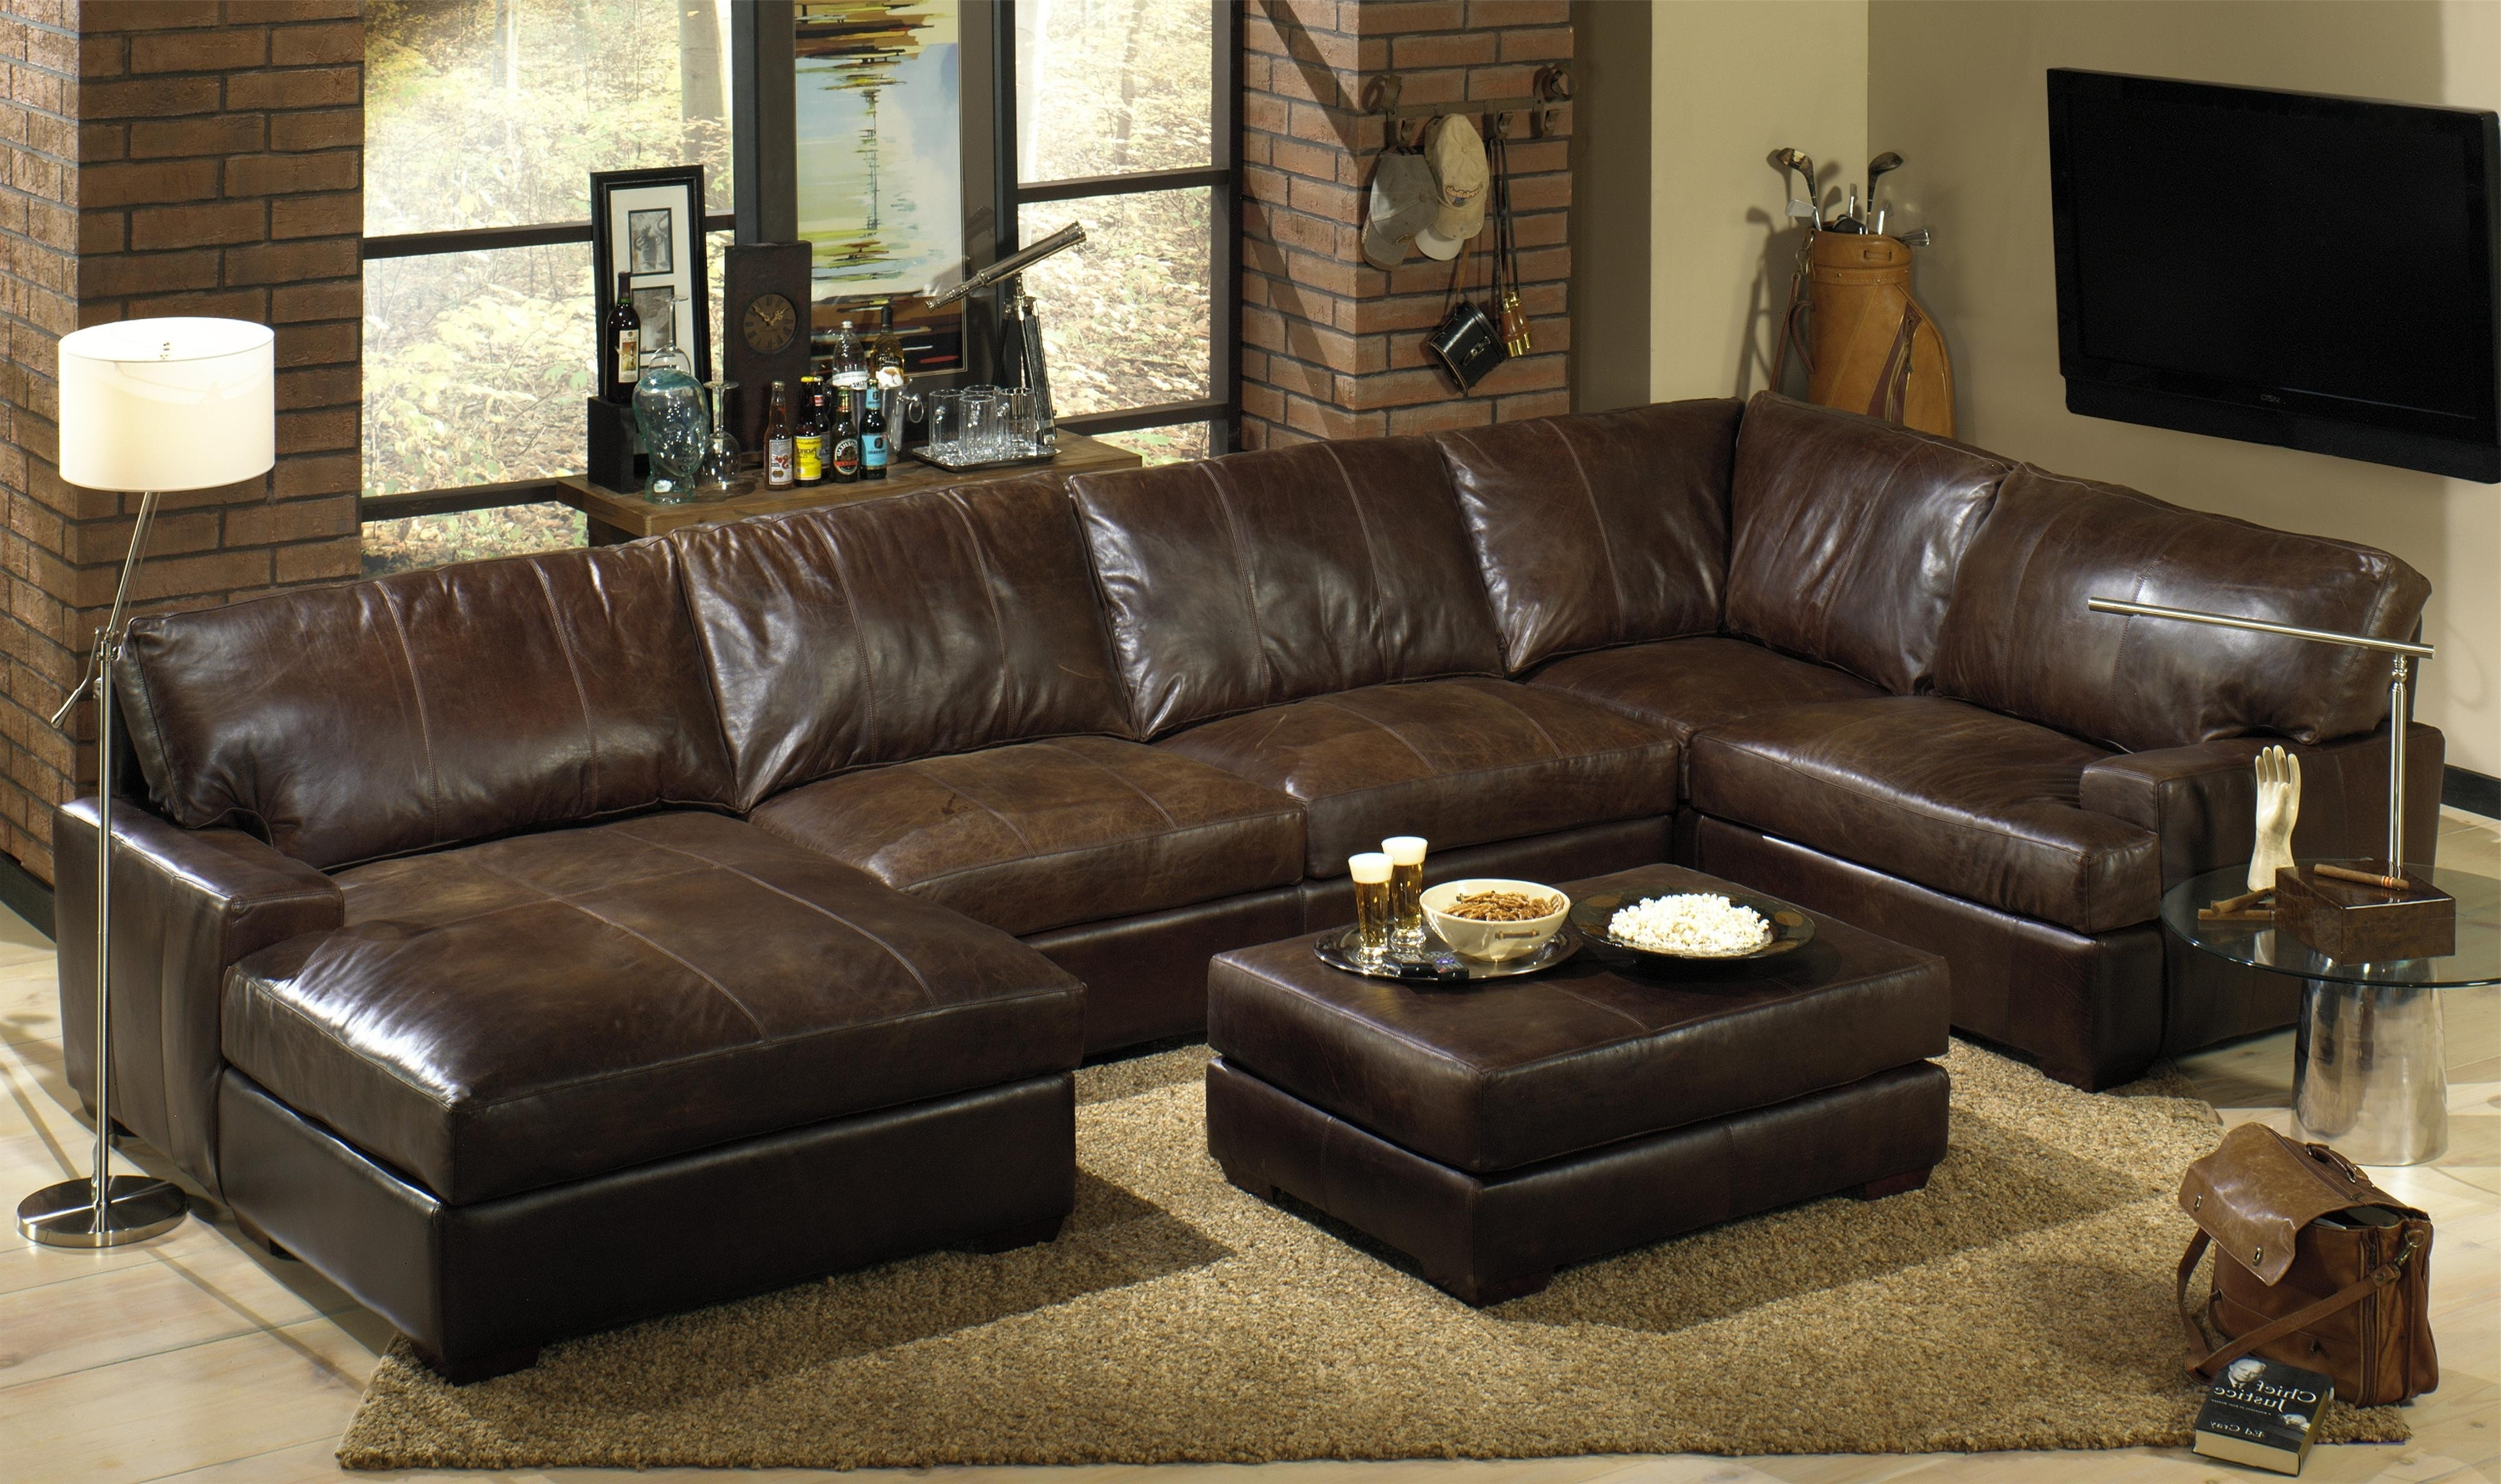 Fashionable Chocolate Brown Sectional Sofas In Luxury Brown Sectional Sofa With Chaise – Buildsimplehome (View 12 of 15)